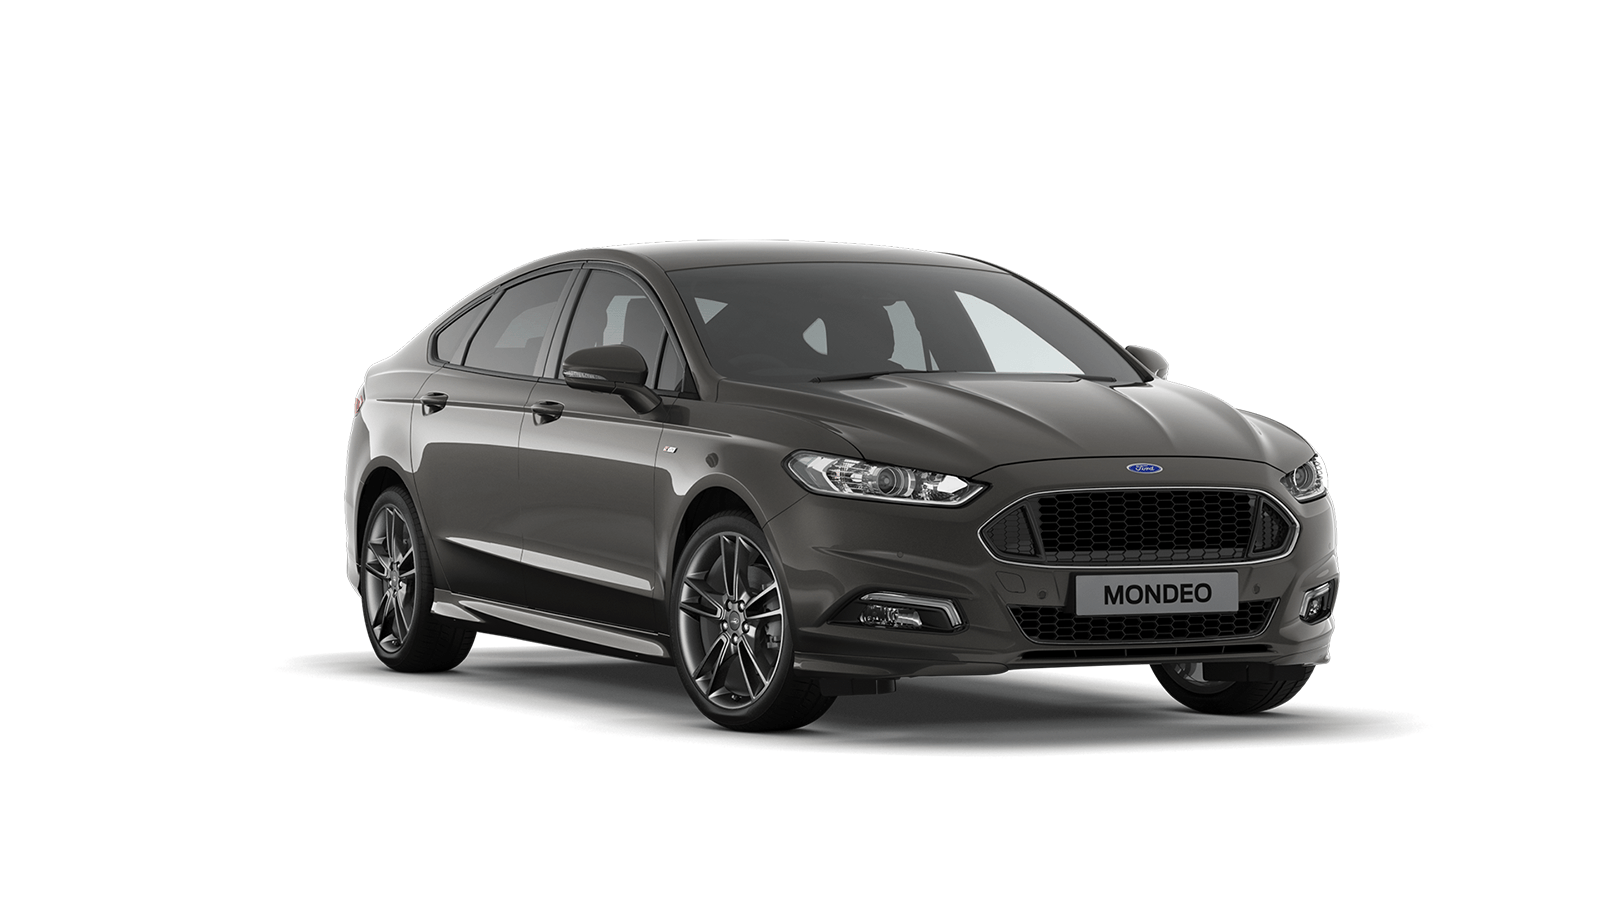 Ford Mondeo ST-Line Edition 2.0 TDCi 150PS at Browne & Day